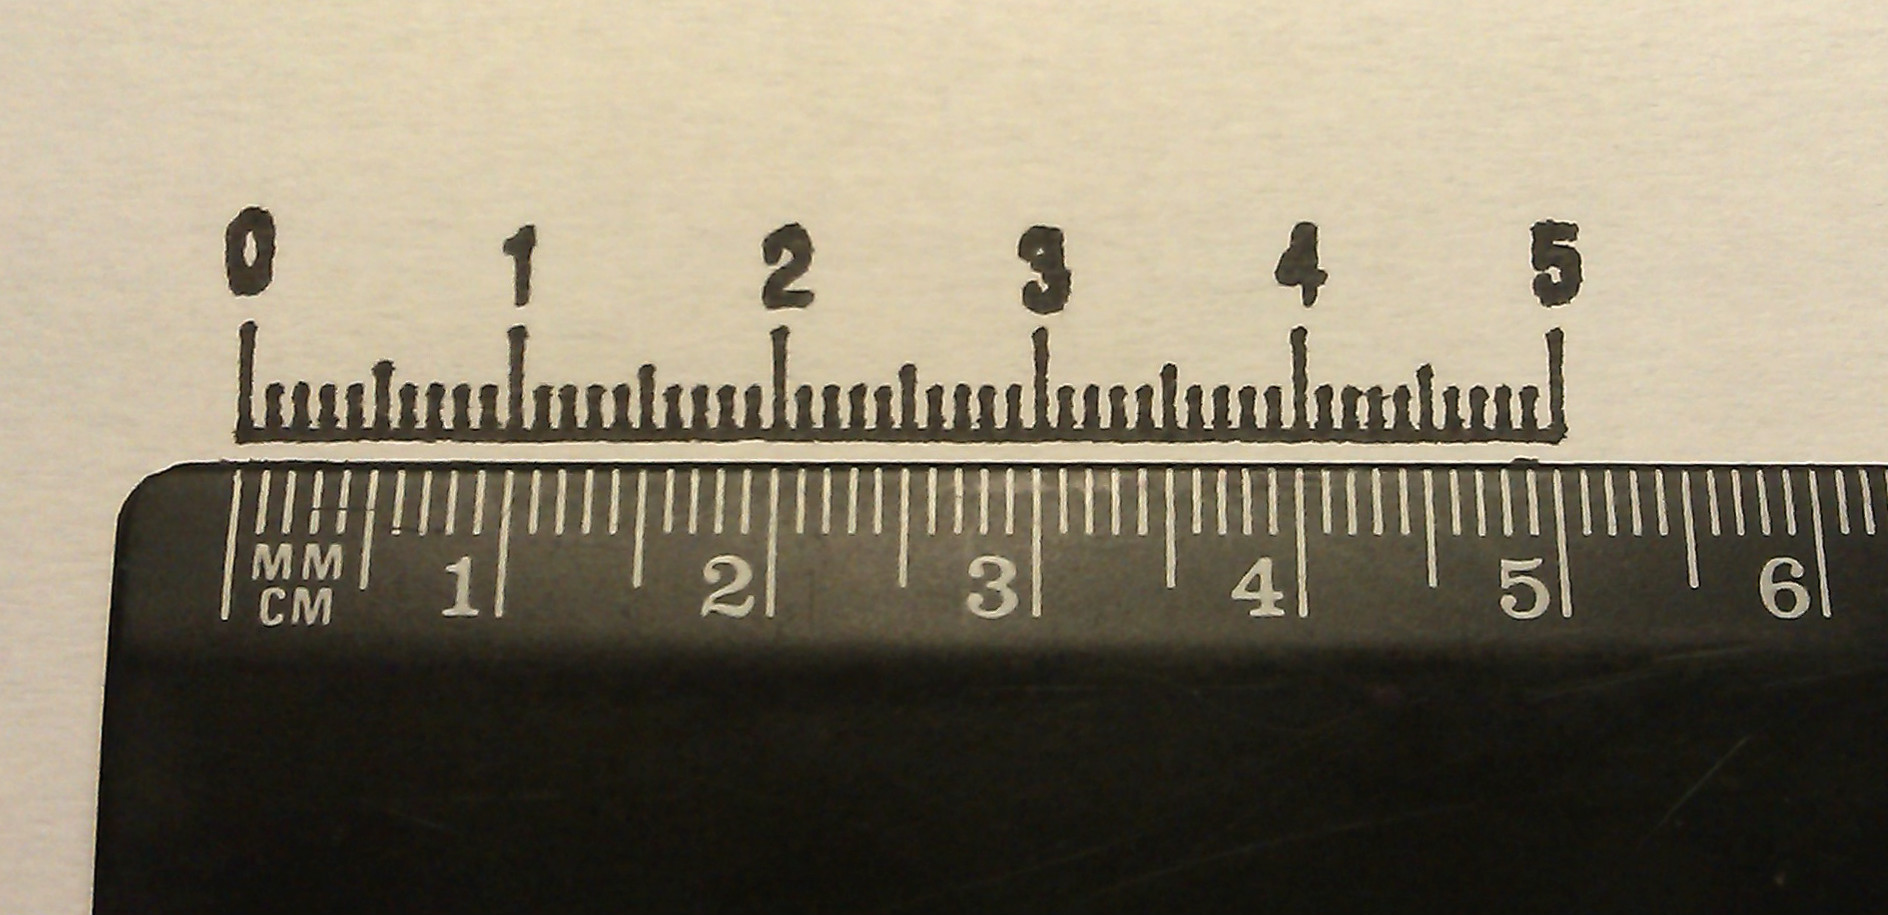 Comparing a plotter drawing with a ruler